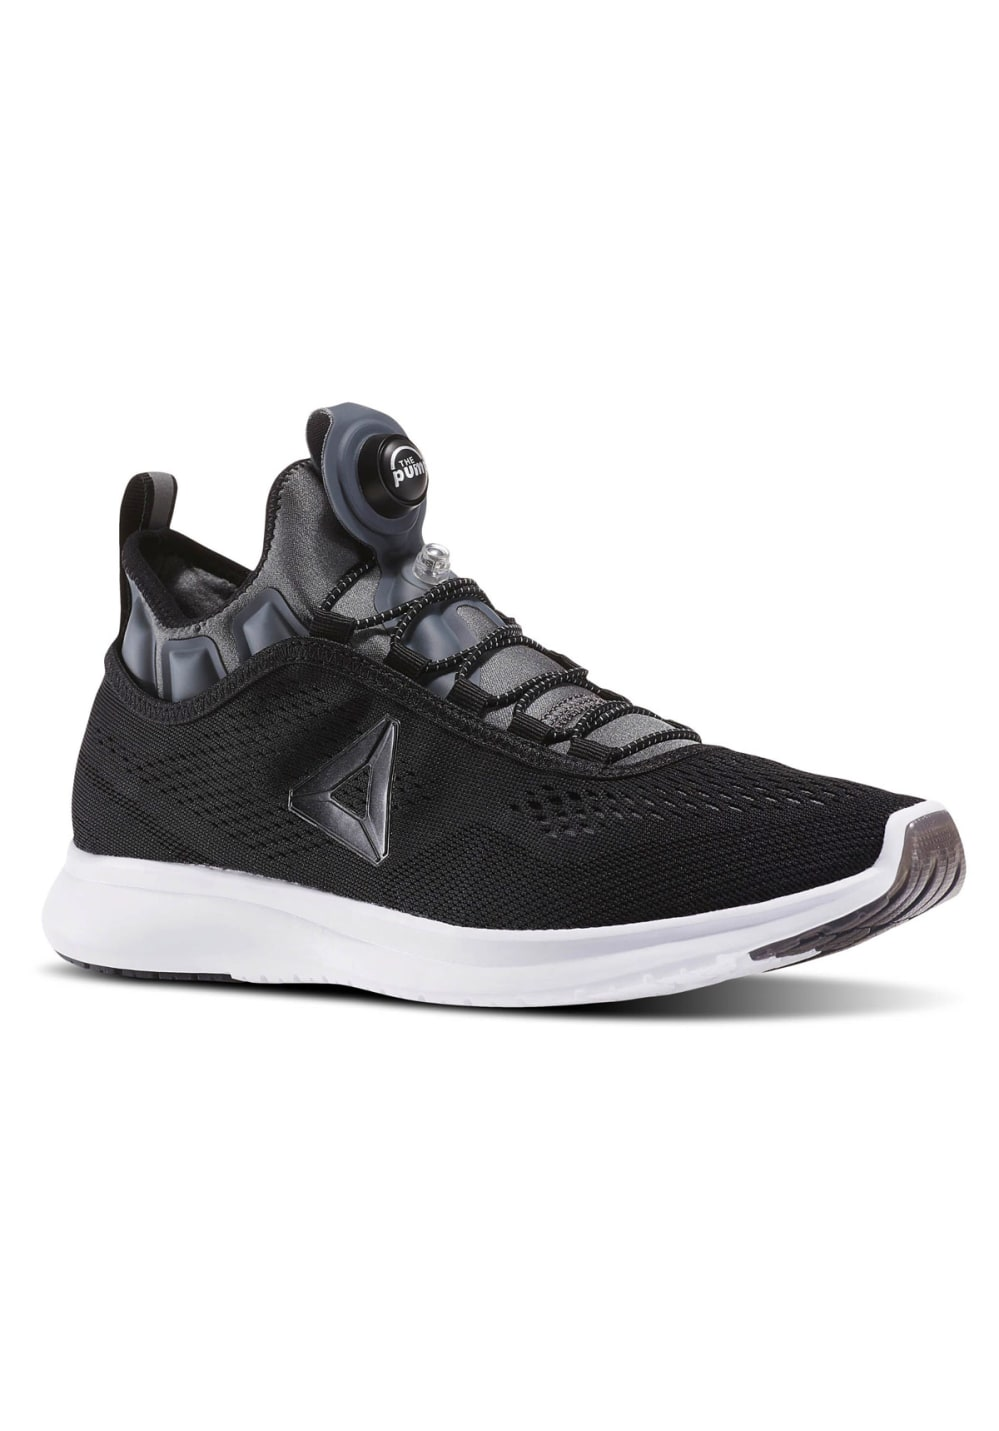 ... Reebok Pump Plus Tee - Running shoes for Men - Black. Back to Overview.  1  2  3. Previous 46b0058e7